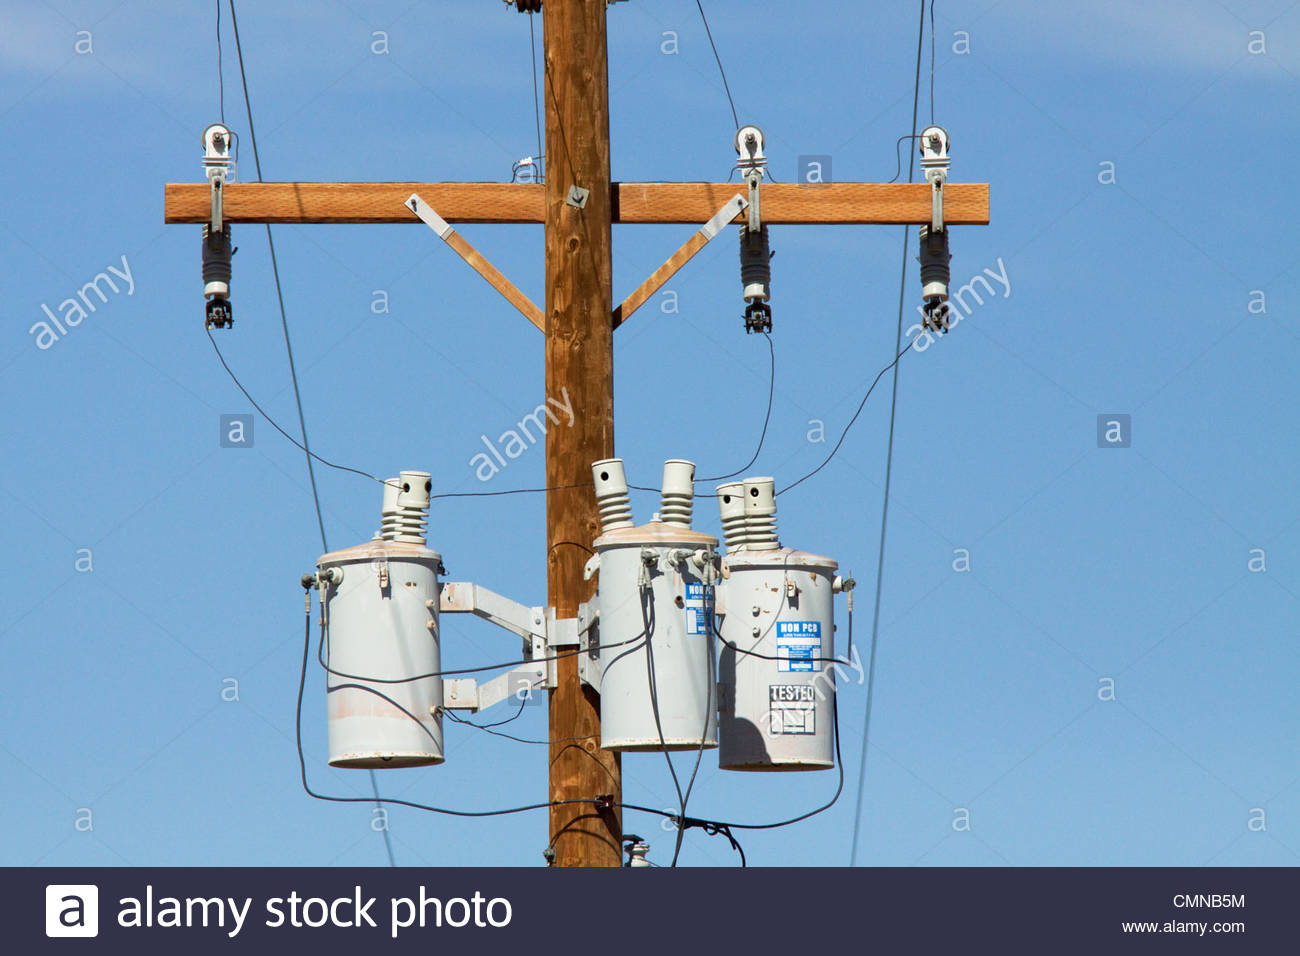 Three Phase Stock Photos & Three Phase Stock Images - Alamy